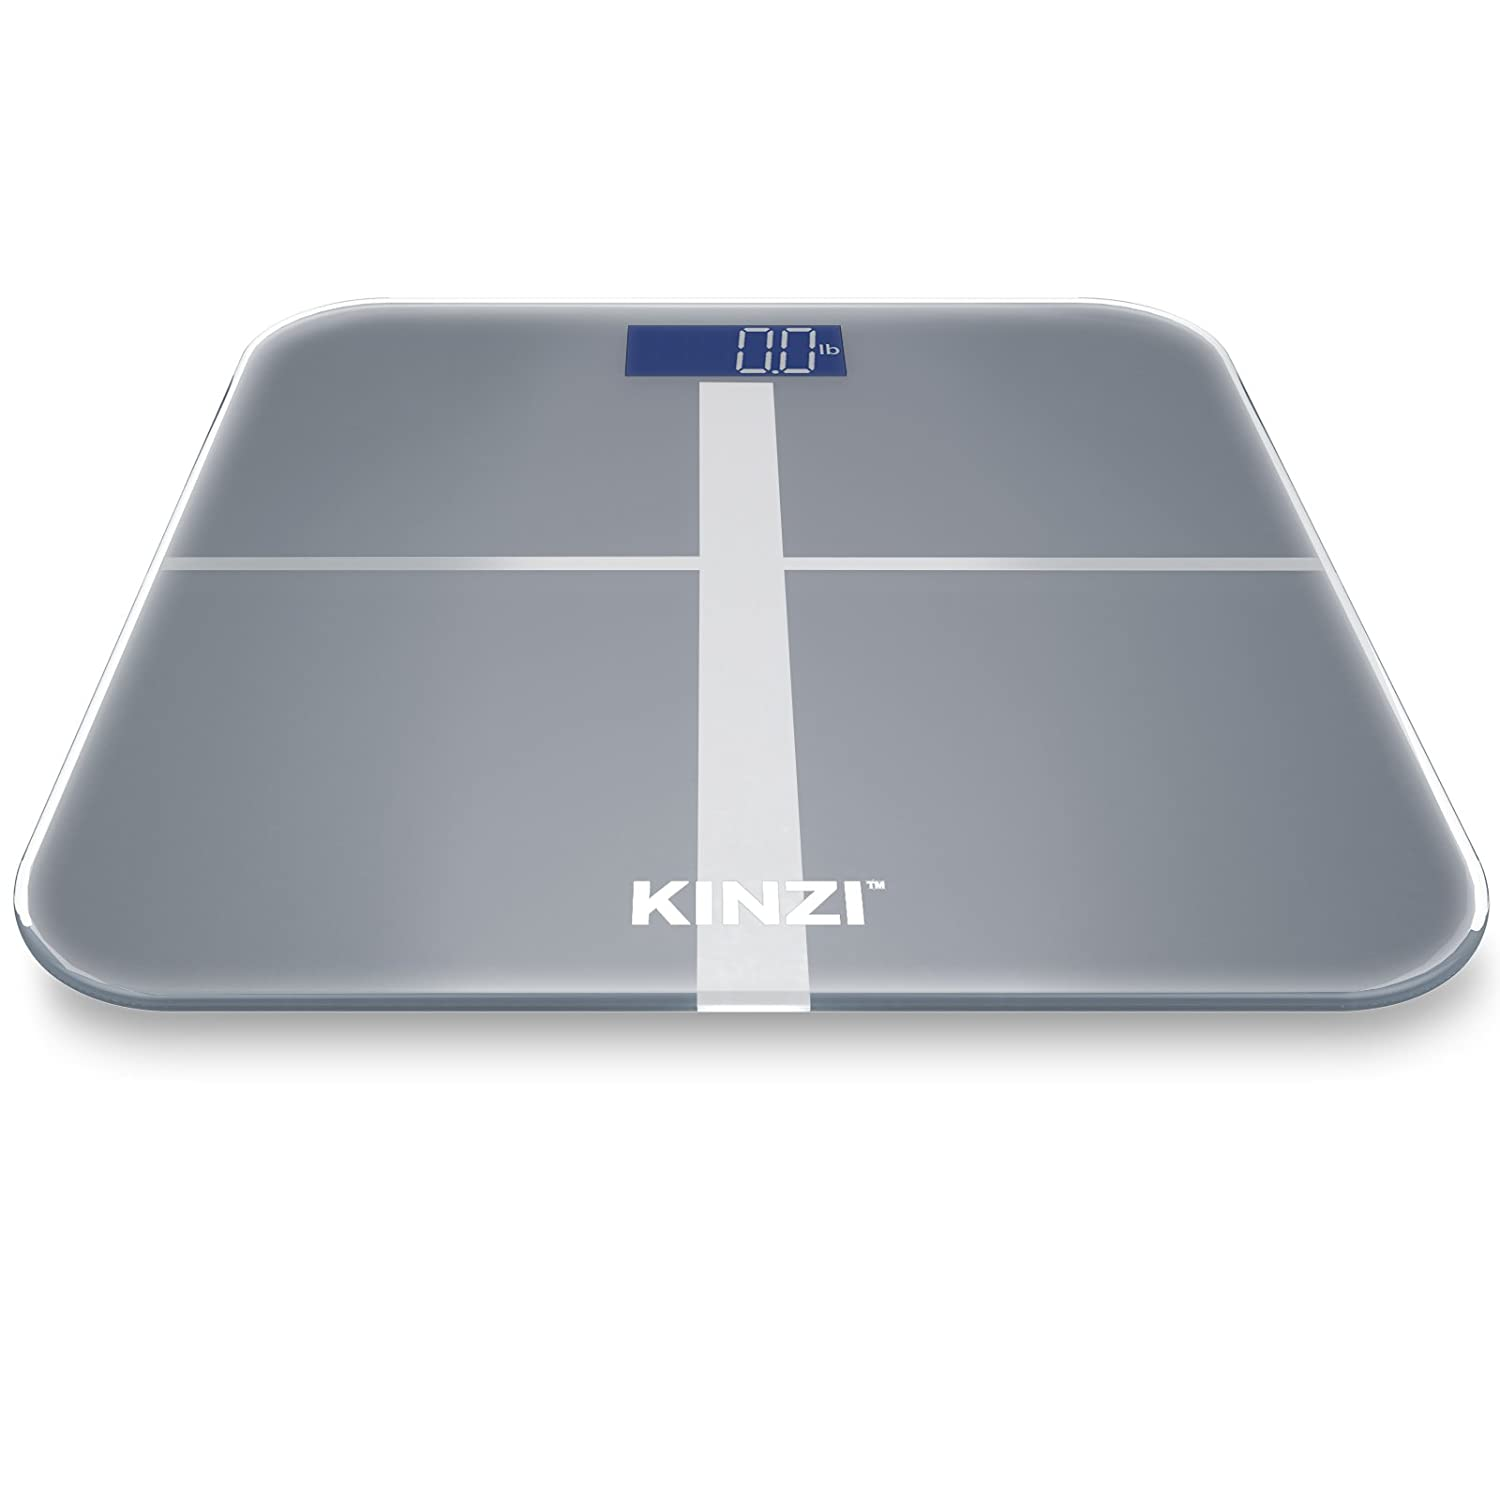 amazoncom kinzi precision digital bathroom scale w extra large lighted display 400 lb capacity and step on technology health personal care - Bathroom Scale Reviews